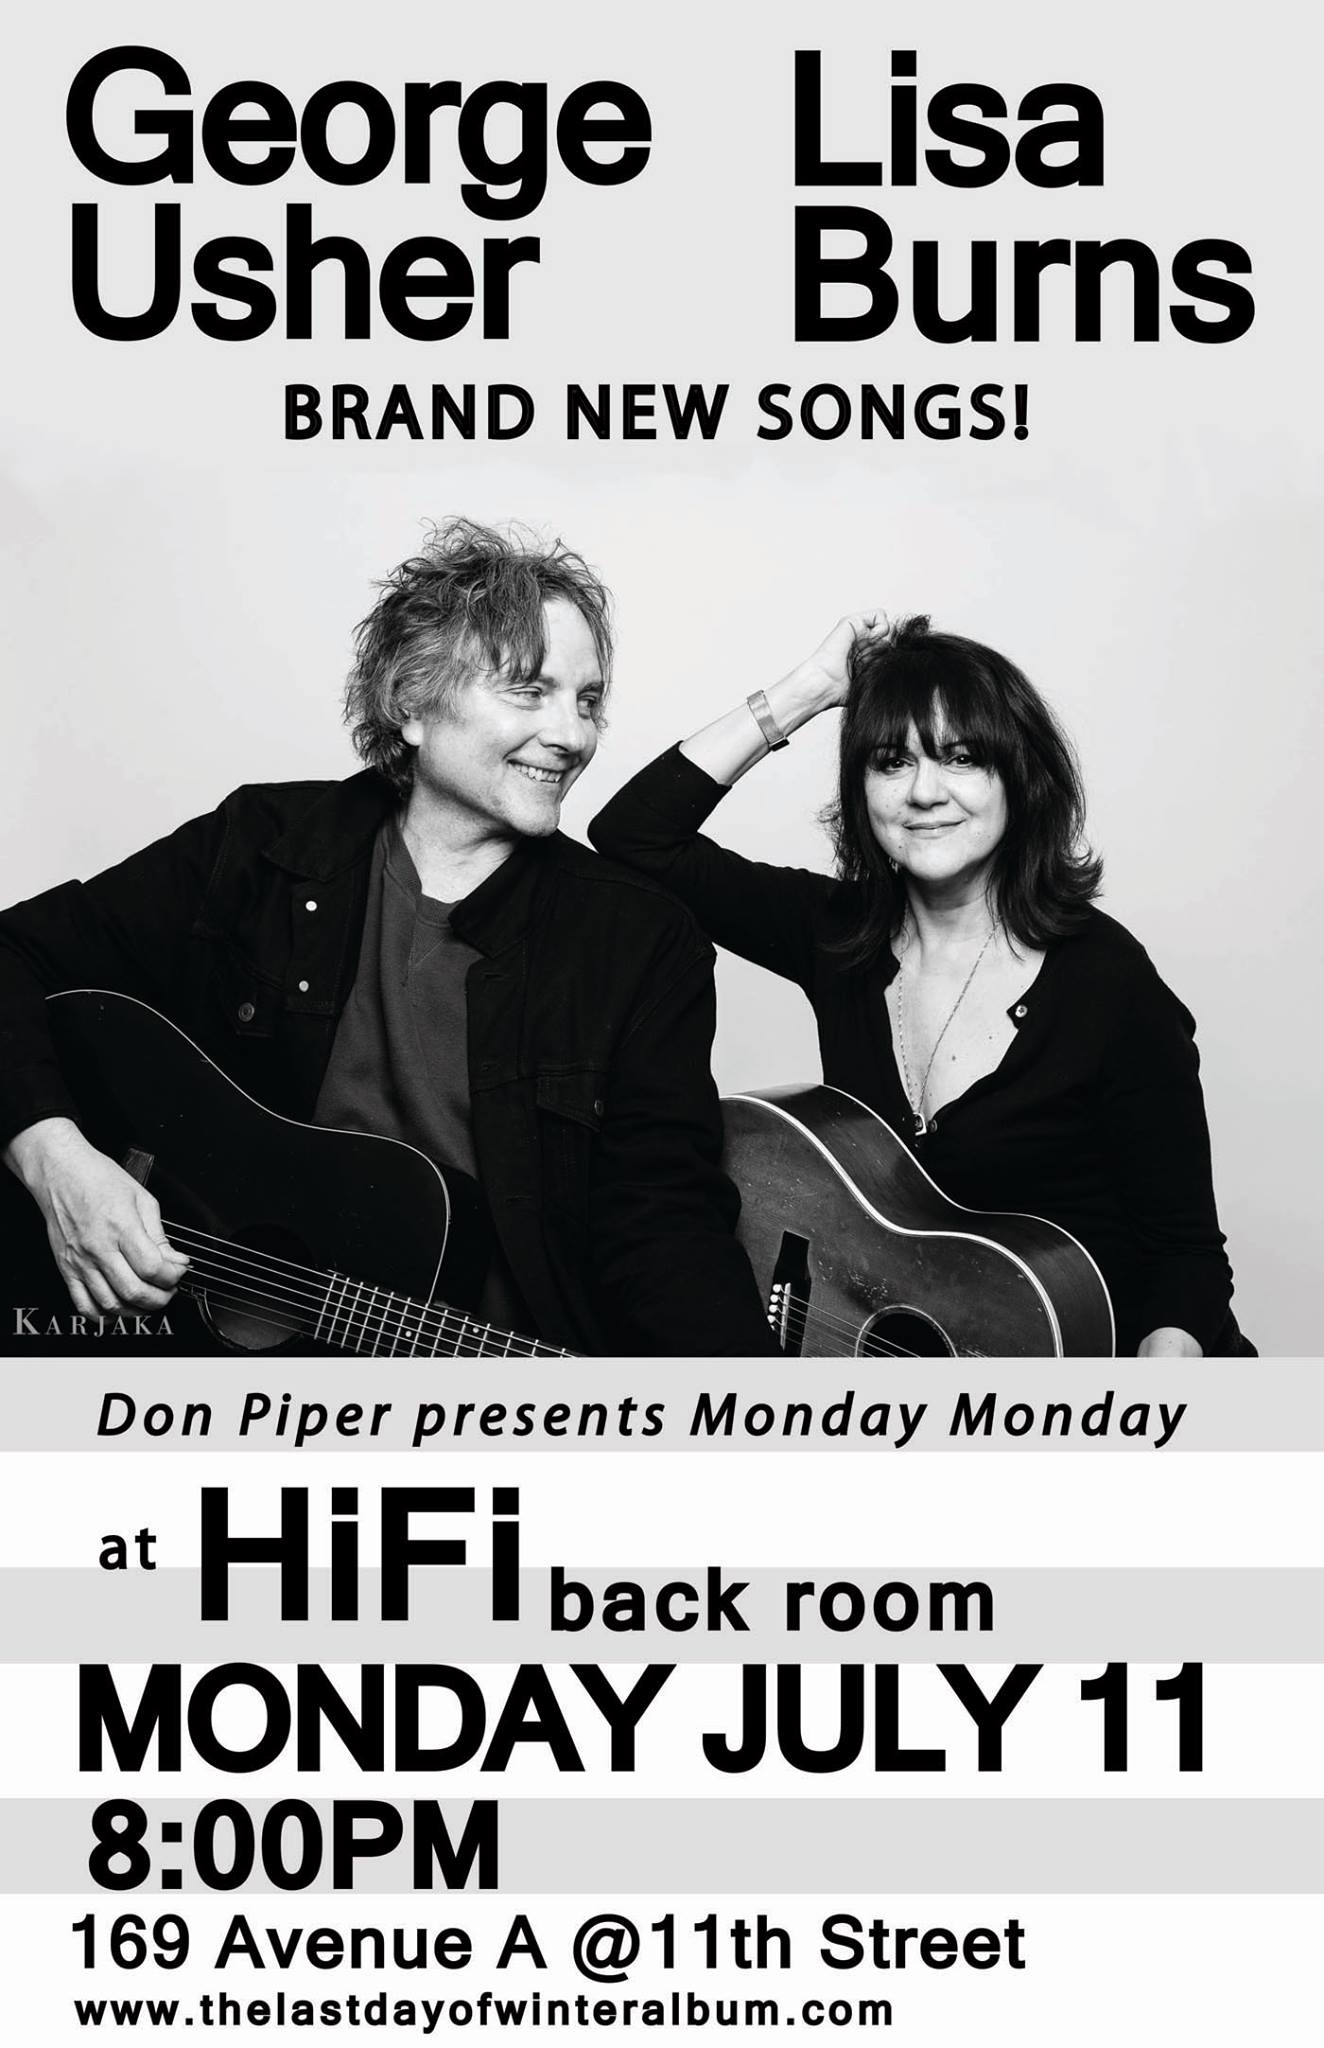 George Usher and Lisa Burns return to HiFi's Backroom stage for Don Piper's Monday Monday series at 8:00pm on July 11